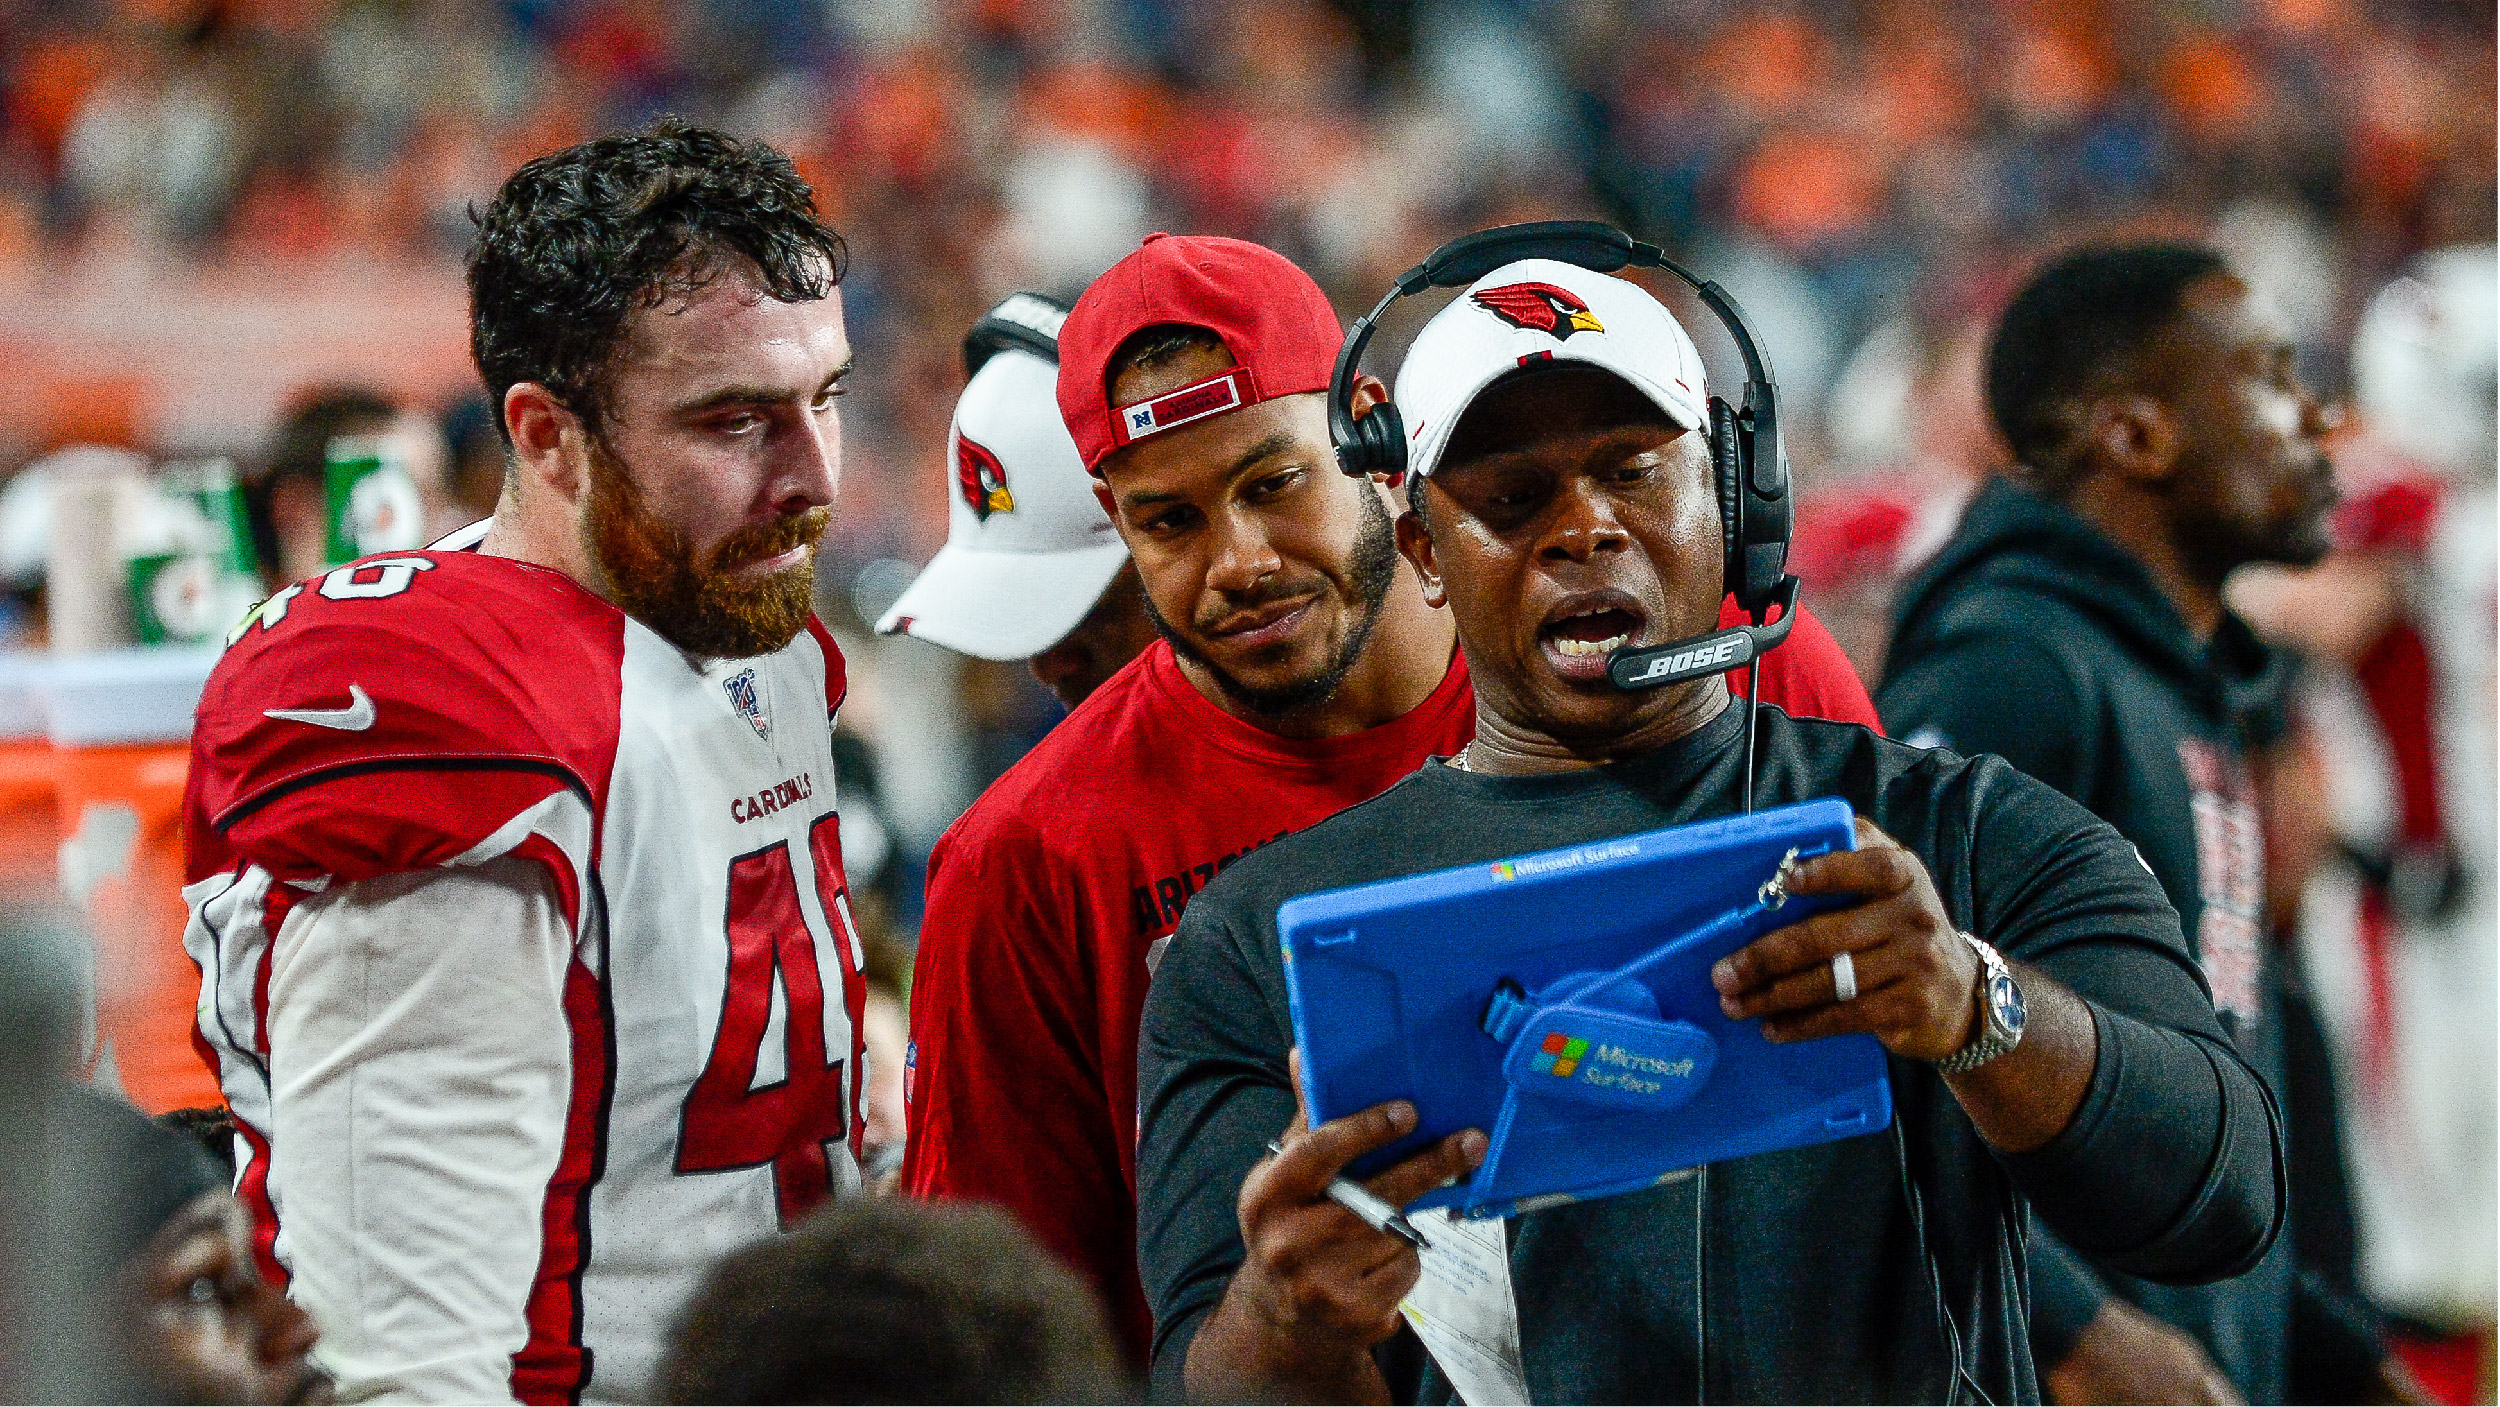 DENVER, CO - AUGUST 29: Offensive coordinator Vance Joseph of the Arizona Cardinals has a word with Tanner Vallejo #48 in the bench area during a game against the Denver Broncos during a preseason National Football League game at Broncos Stadium at Mile High on August 29, 2019 in Denver, Colorado. (Photo by Dustin Bradford/Getty Images)